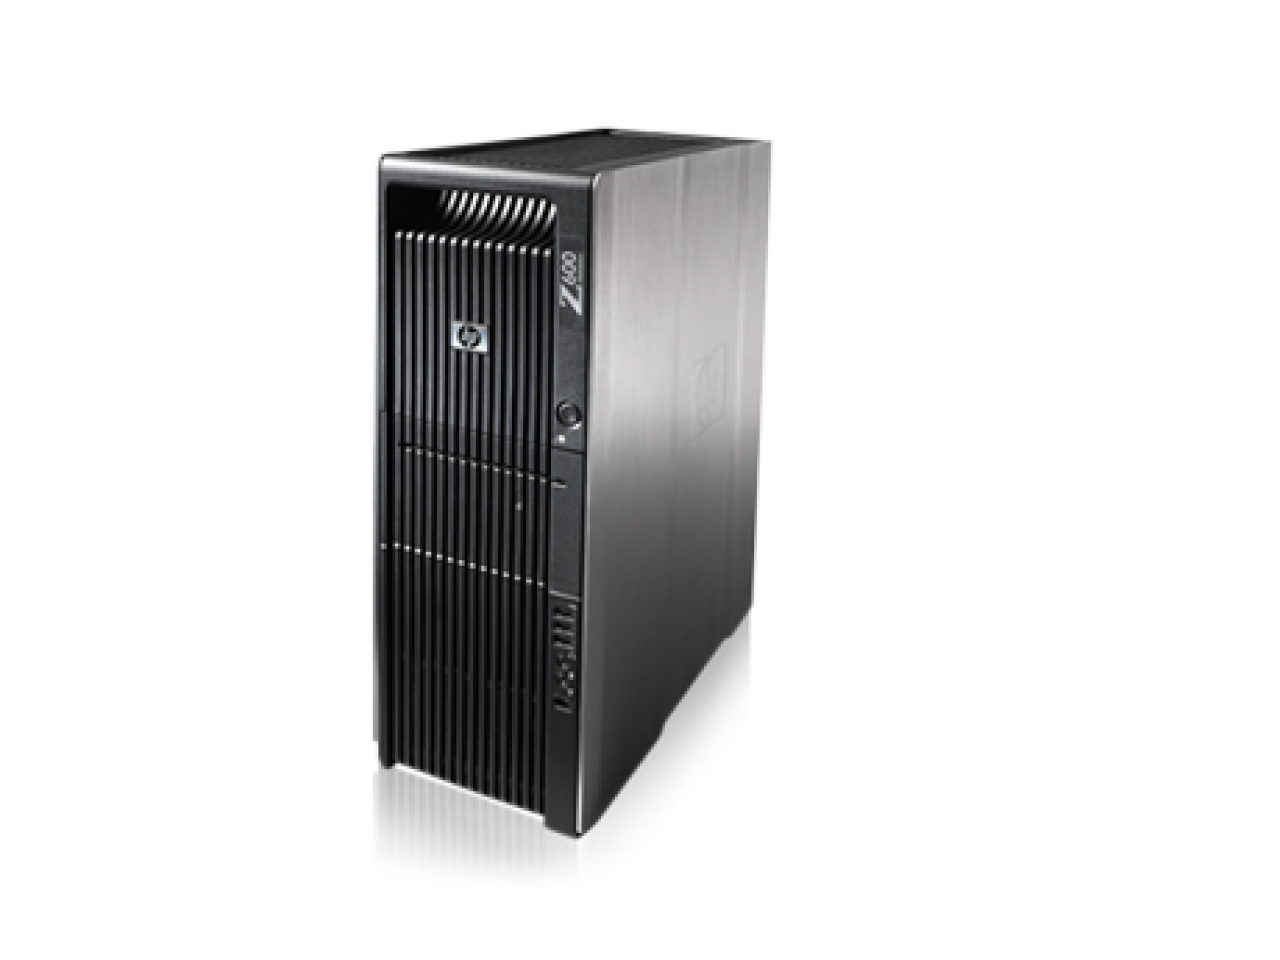 HP Z600 WORKSTATION,  Intel Xeon X5667, 3.07 GHz, video: nVIDIA Quadro NVS 295; TOWER 2007080107